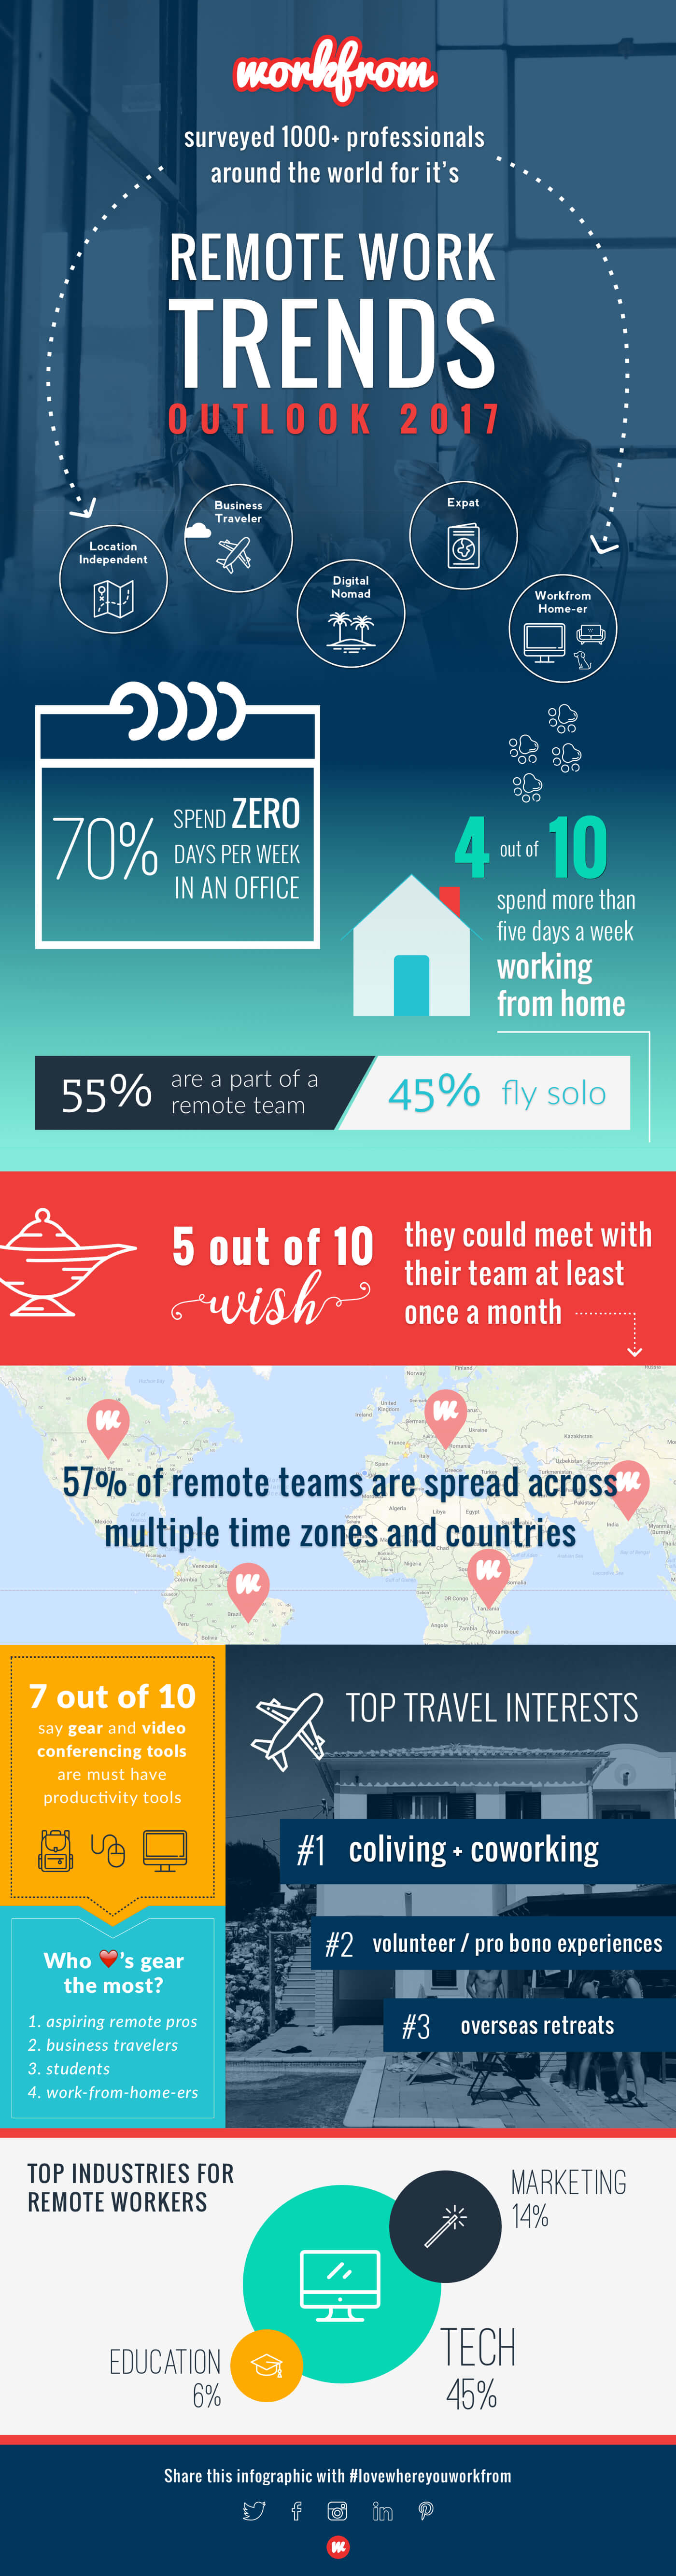 Remote Work Trends Survey Infographic